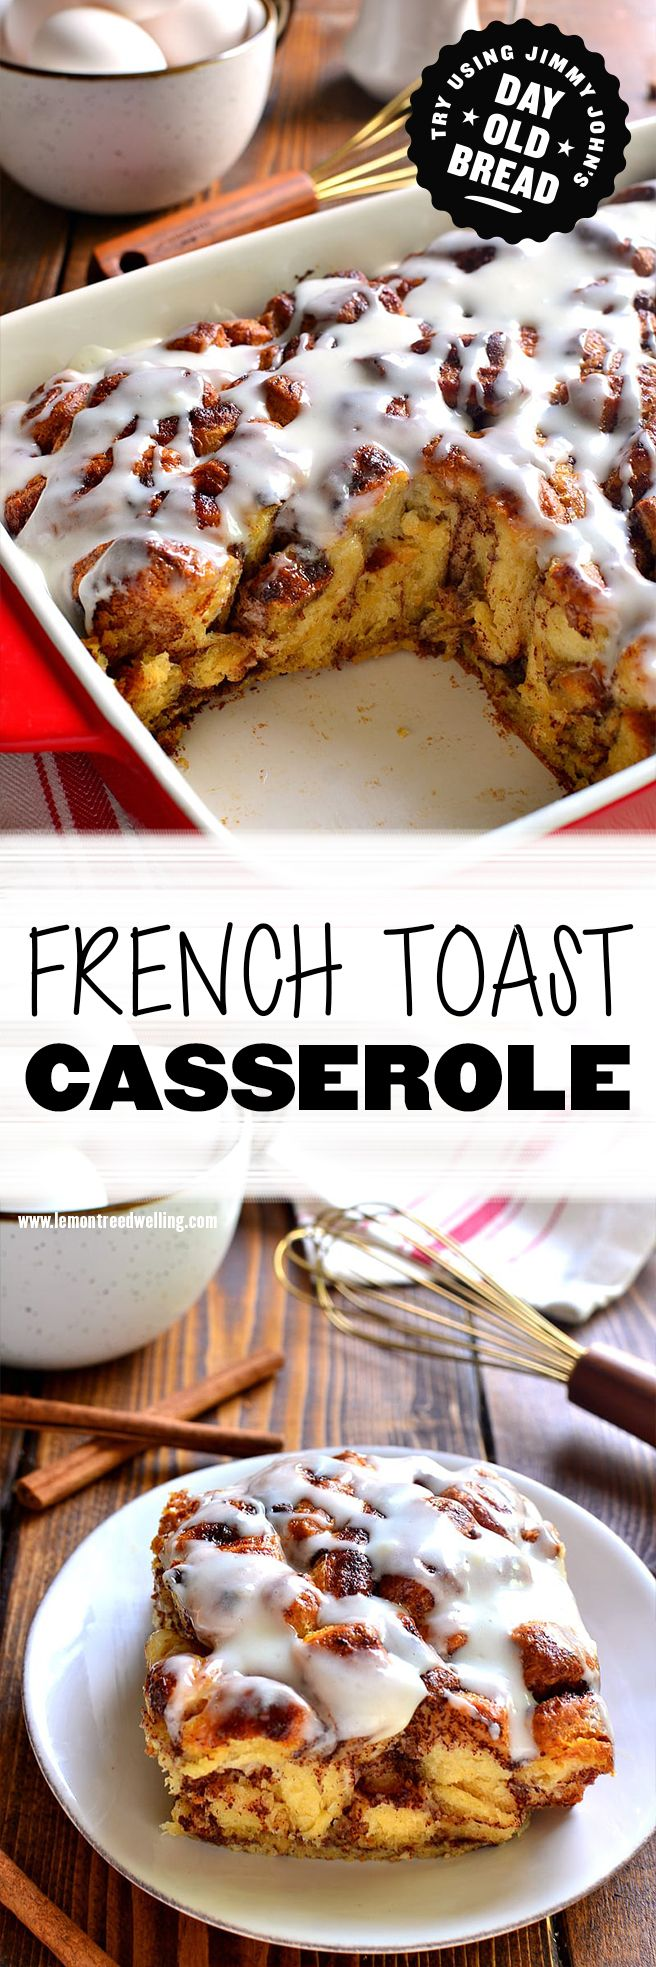 French Toast Casserole! Try making with Jimmy John's bread and lots of cinnamon. Oey, gooey, delicious casserole for the whole family